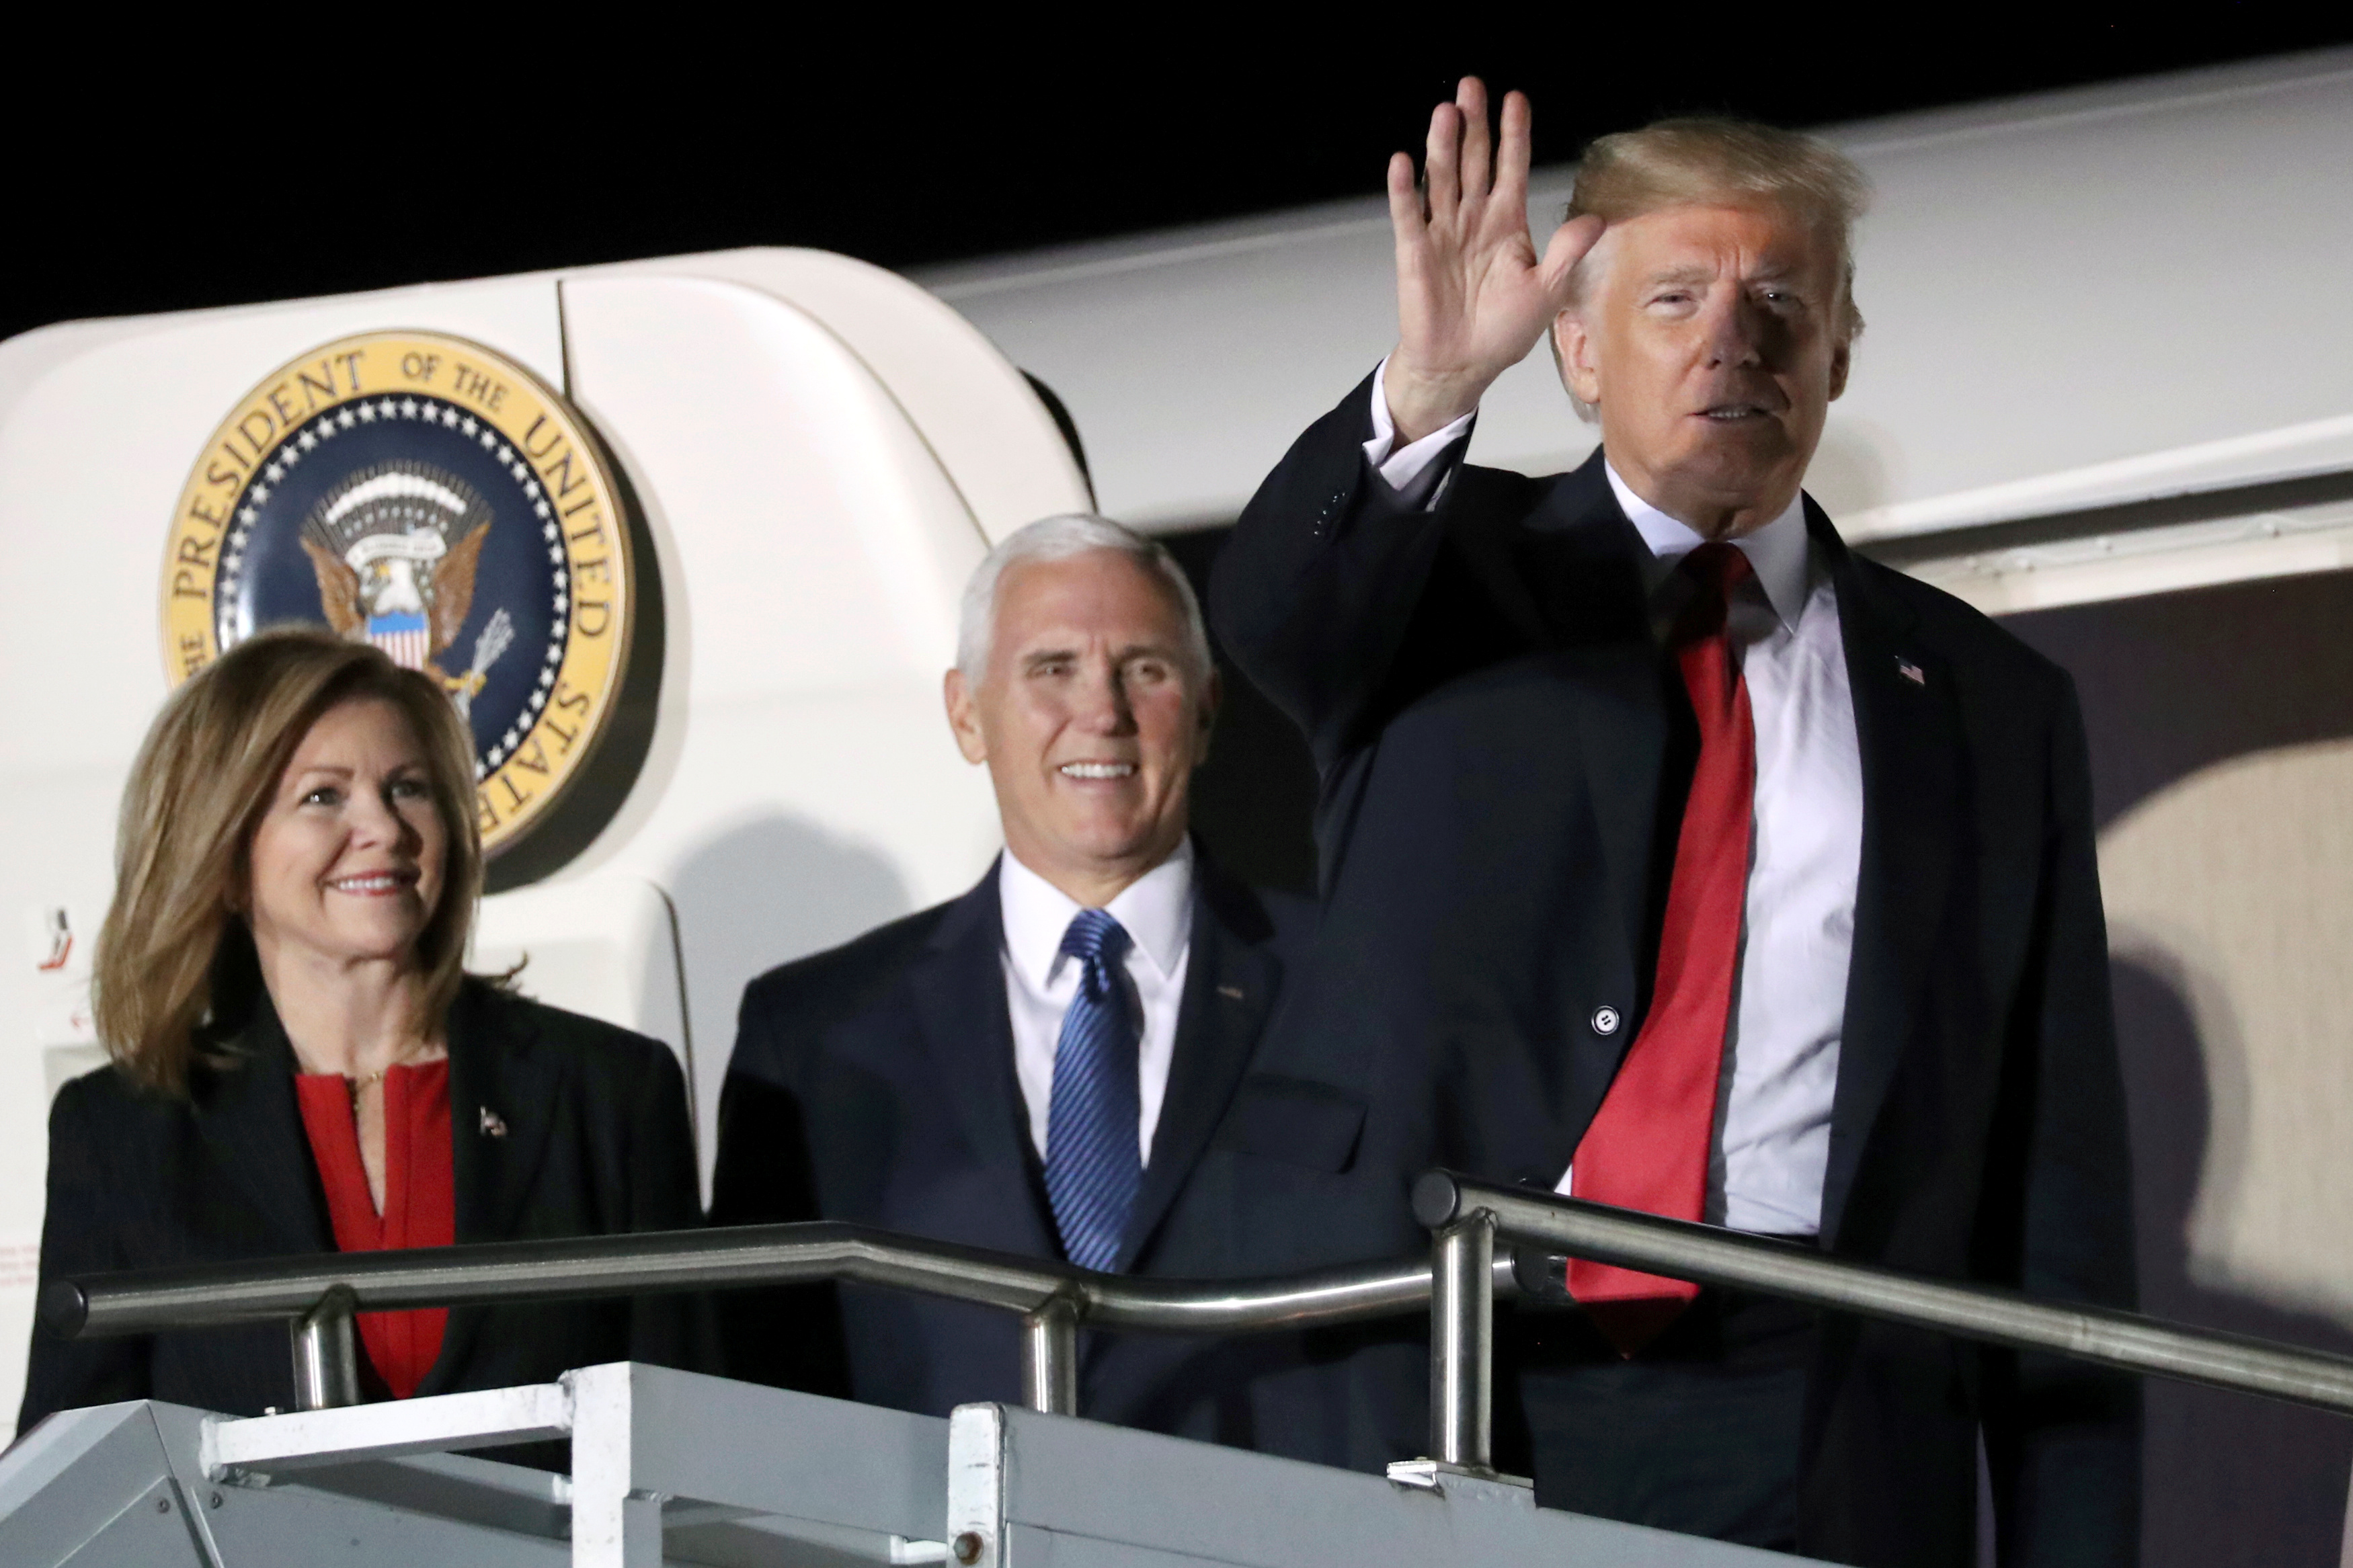 U.S. President Donald Trump waves next to Tennessee Republican candidate for U.S. Senate Marsha Blackburn and U.S. Vice President Mike Pence as he arrives aboard Air Force One to rally with supporters in Chattanooga, Tennessee, U.S. November 4, 2018. REUTERS/Jonathan Ernst - RC1B1AA42FB0